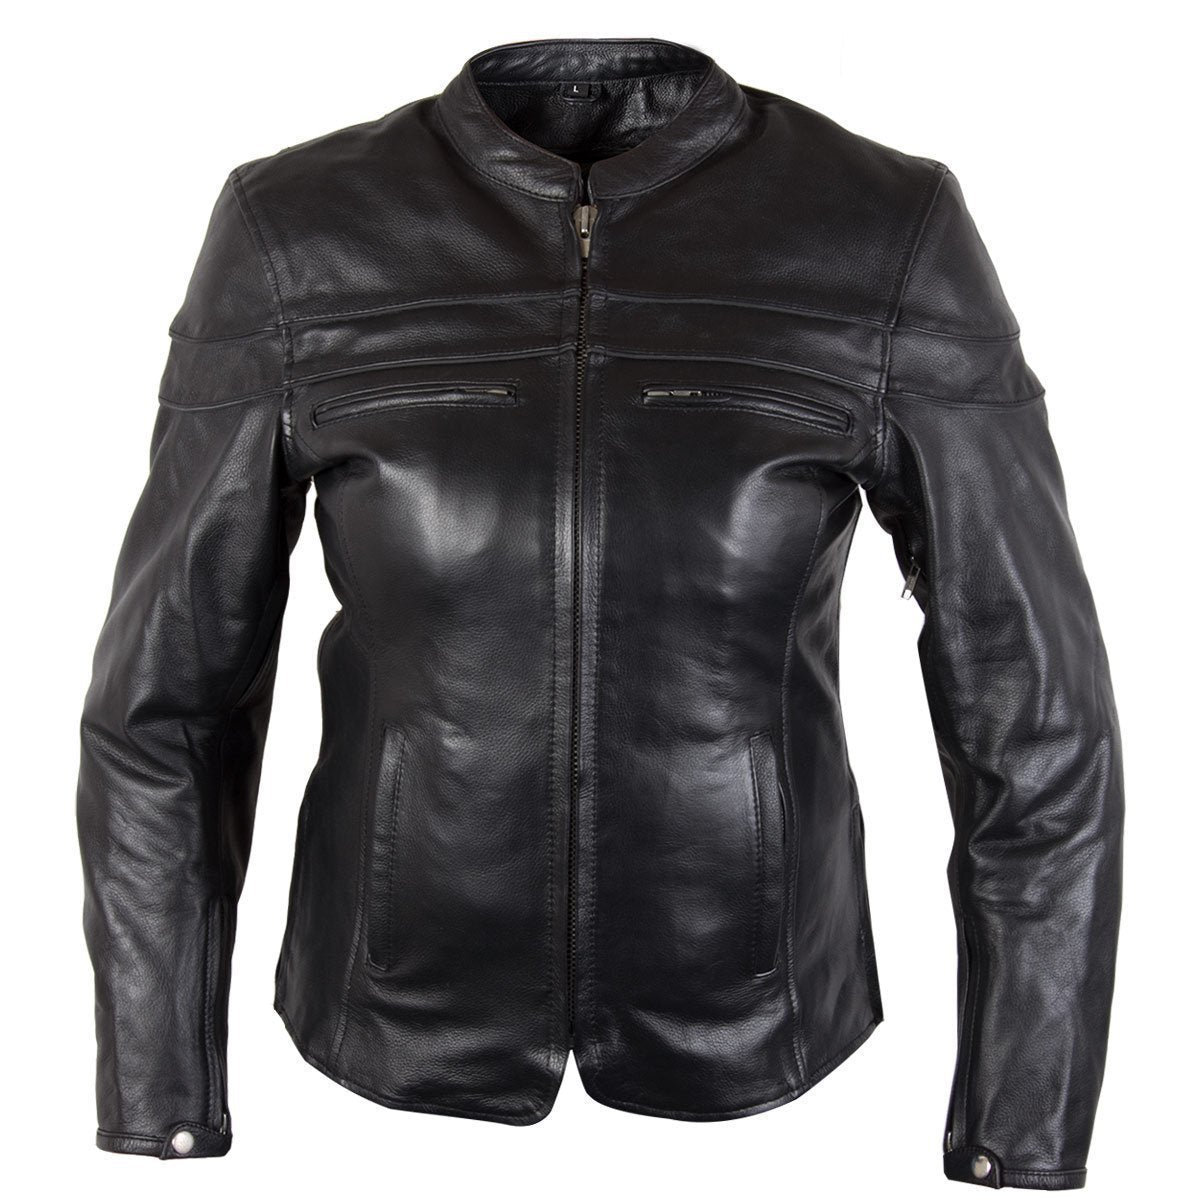 Xelement XS6332 'Road Queen' Ladies Black Cowhide Leather Jacket